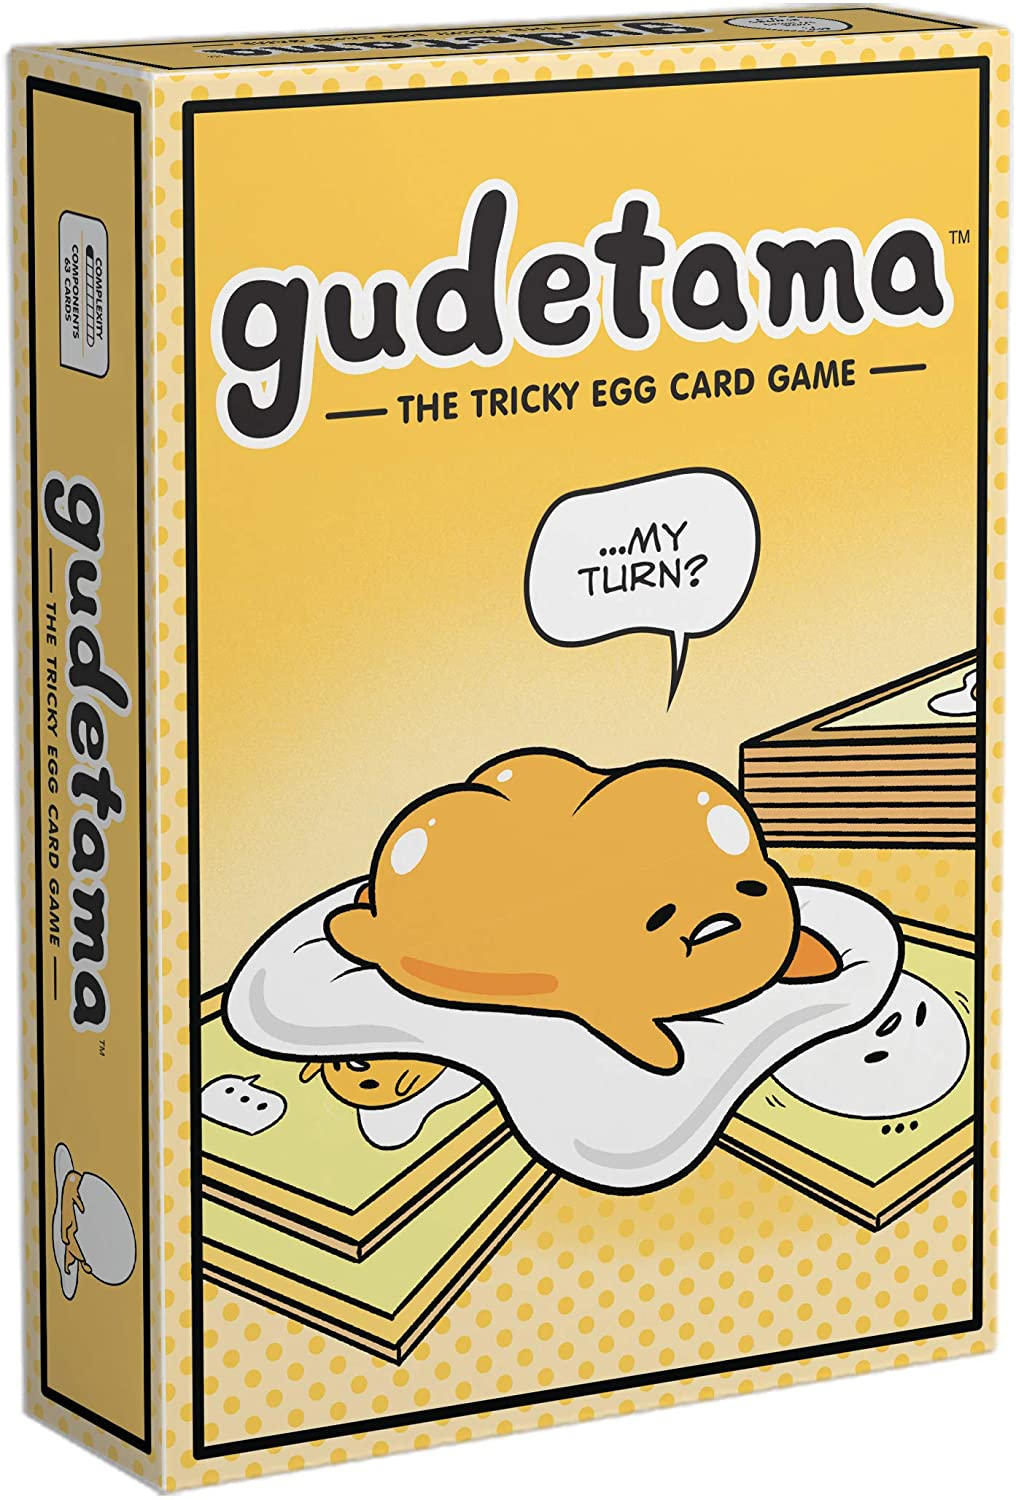 Gudetama: The Tricky Egg Card Game | Misty Mountain Games